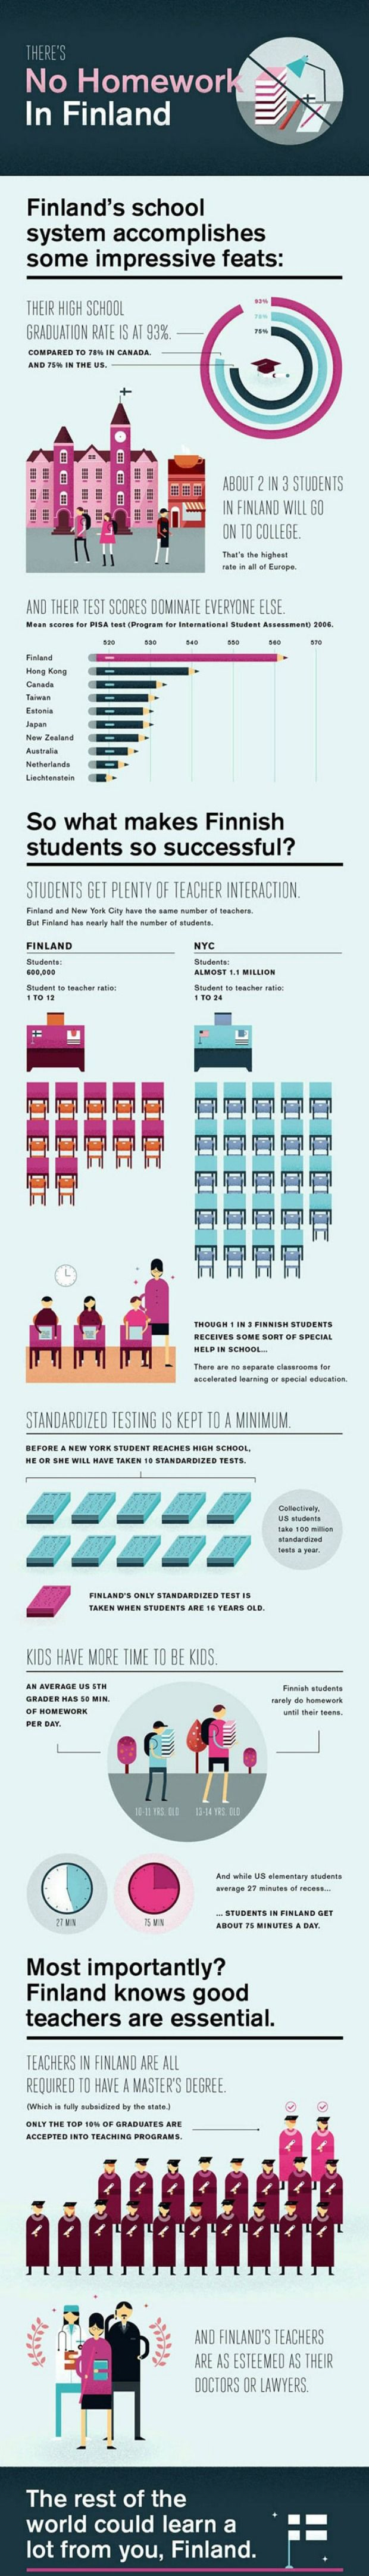 Finland Education System Beats the World [Infographic]